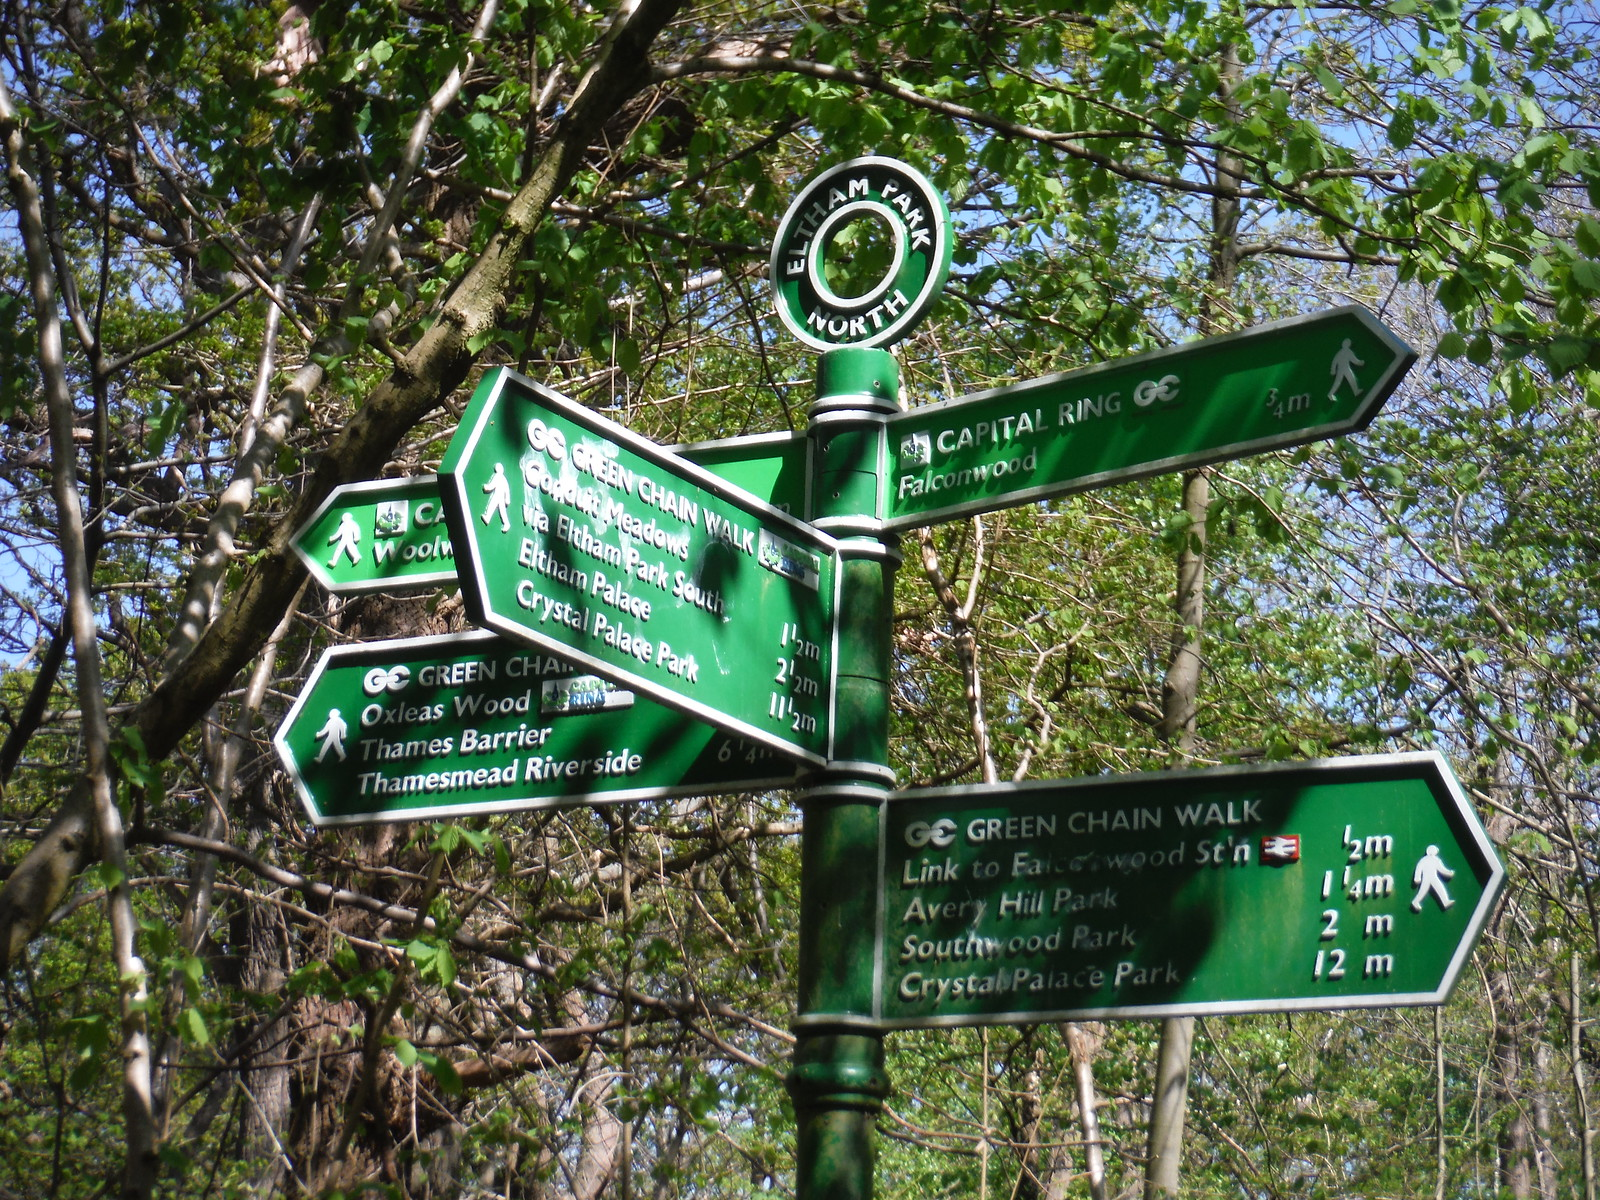 Green Chain Walk and Capital Ring Signpost in Shepherdleas Wood SWC Short Walk 44 - Oxleas Wood and Shooters Hill (Falconwood Circular)